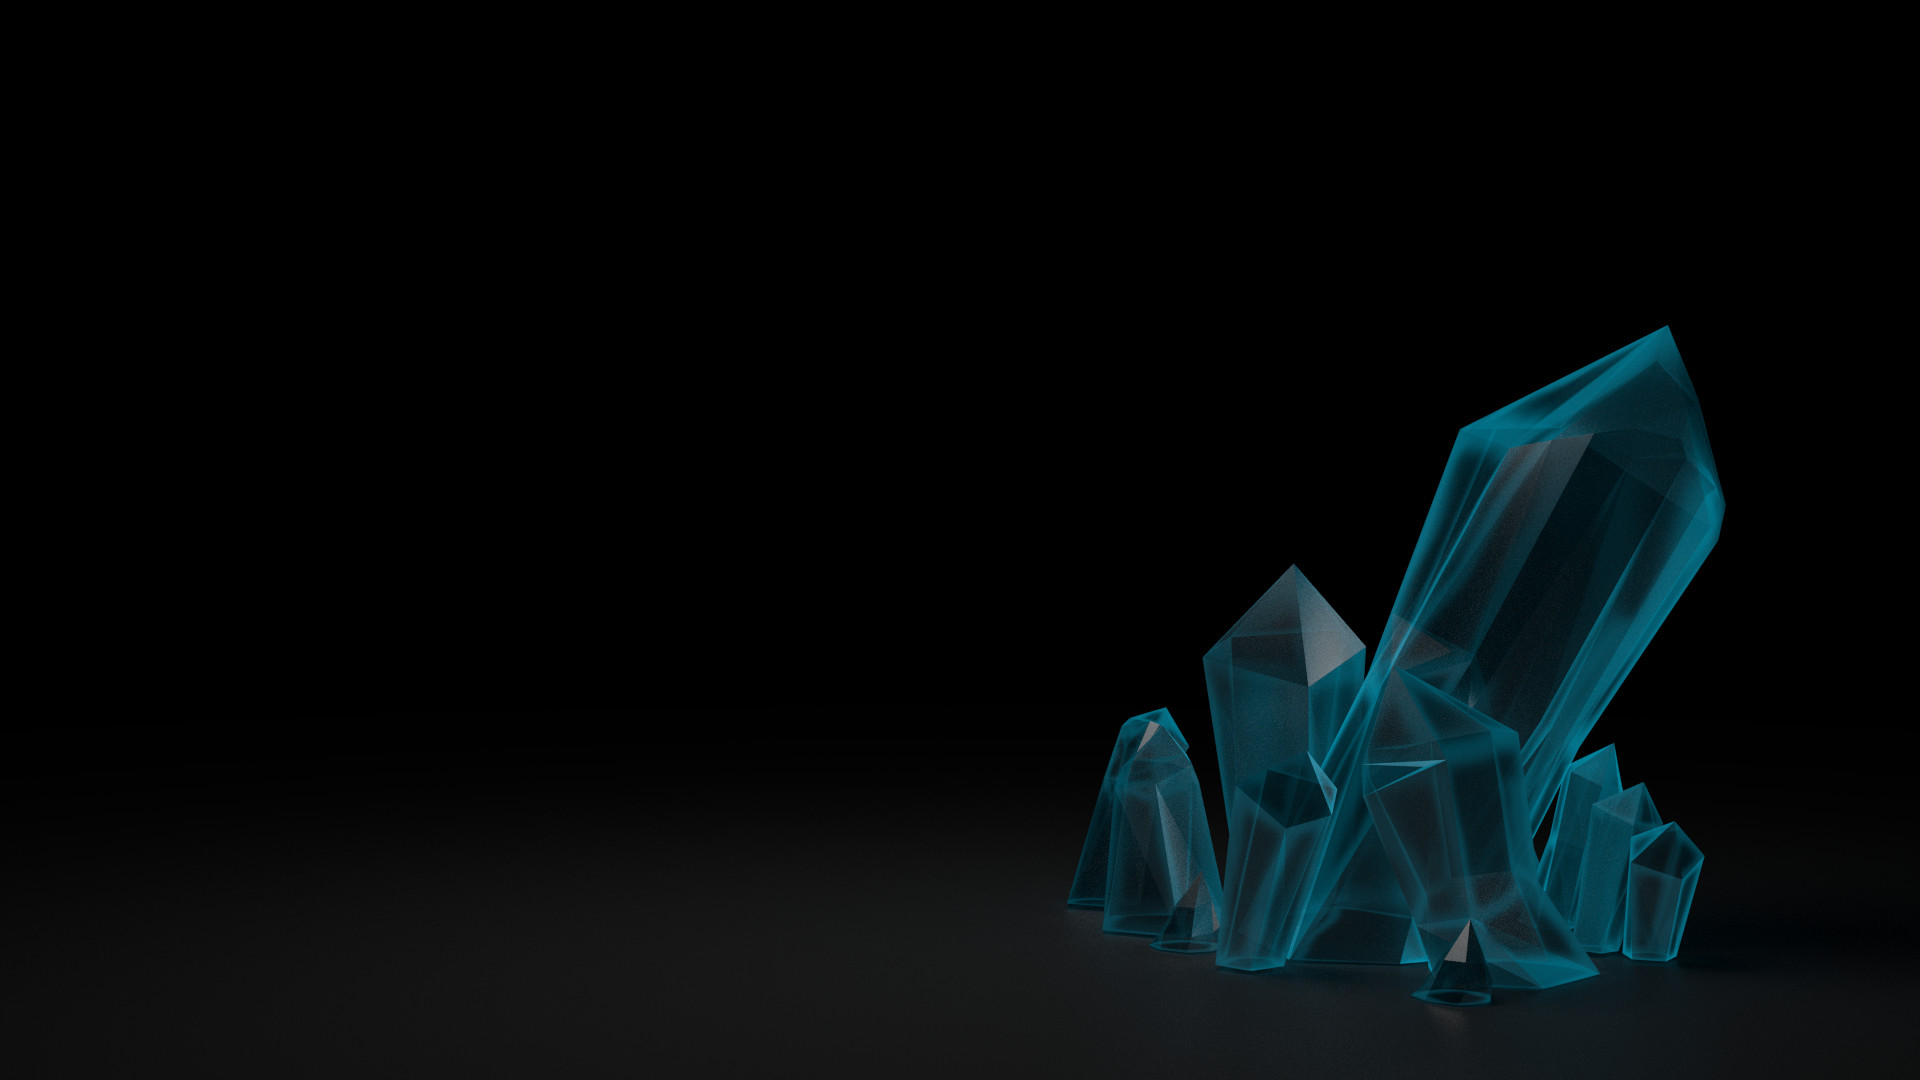 Andrew weir crystals 3d by piplington d68xabl